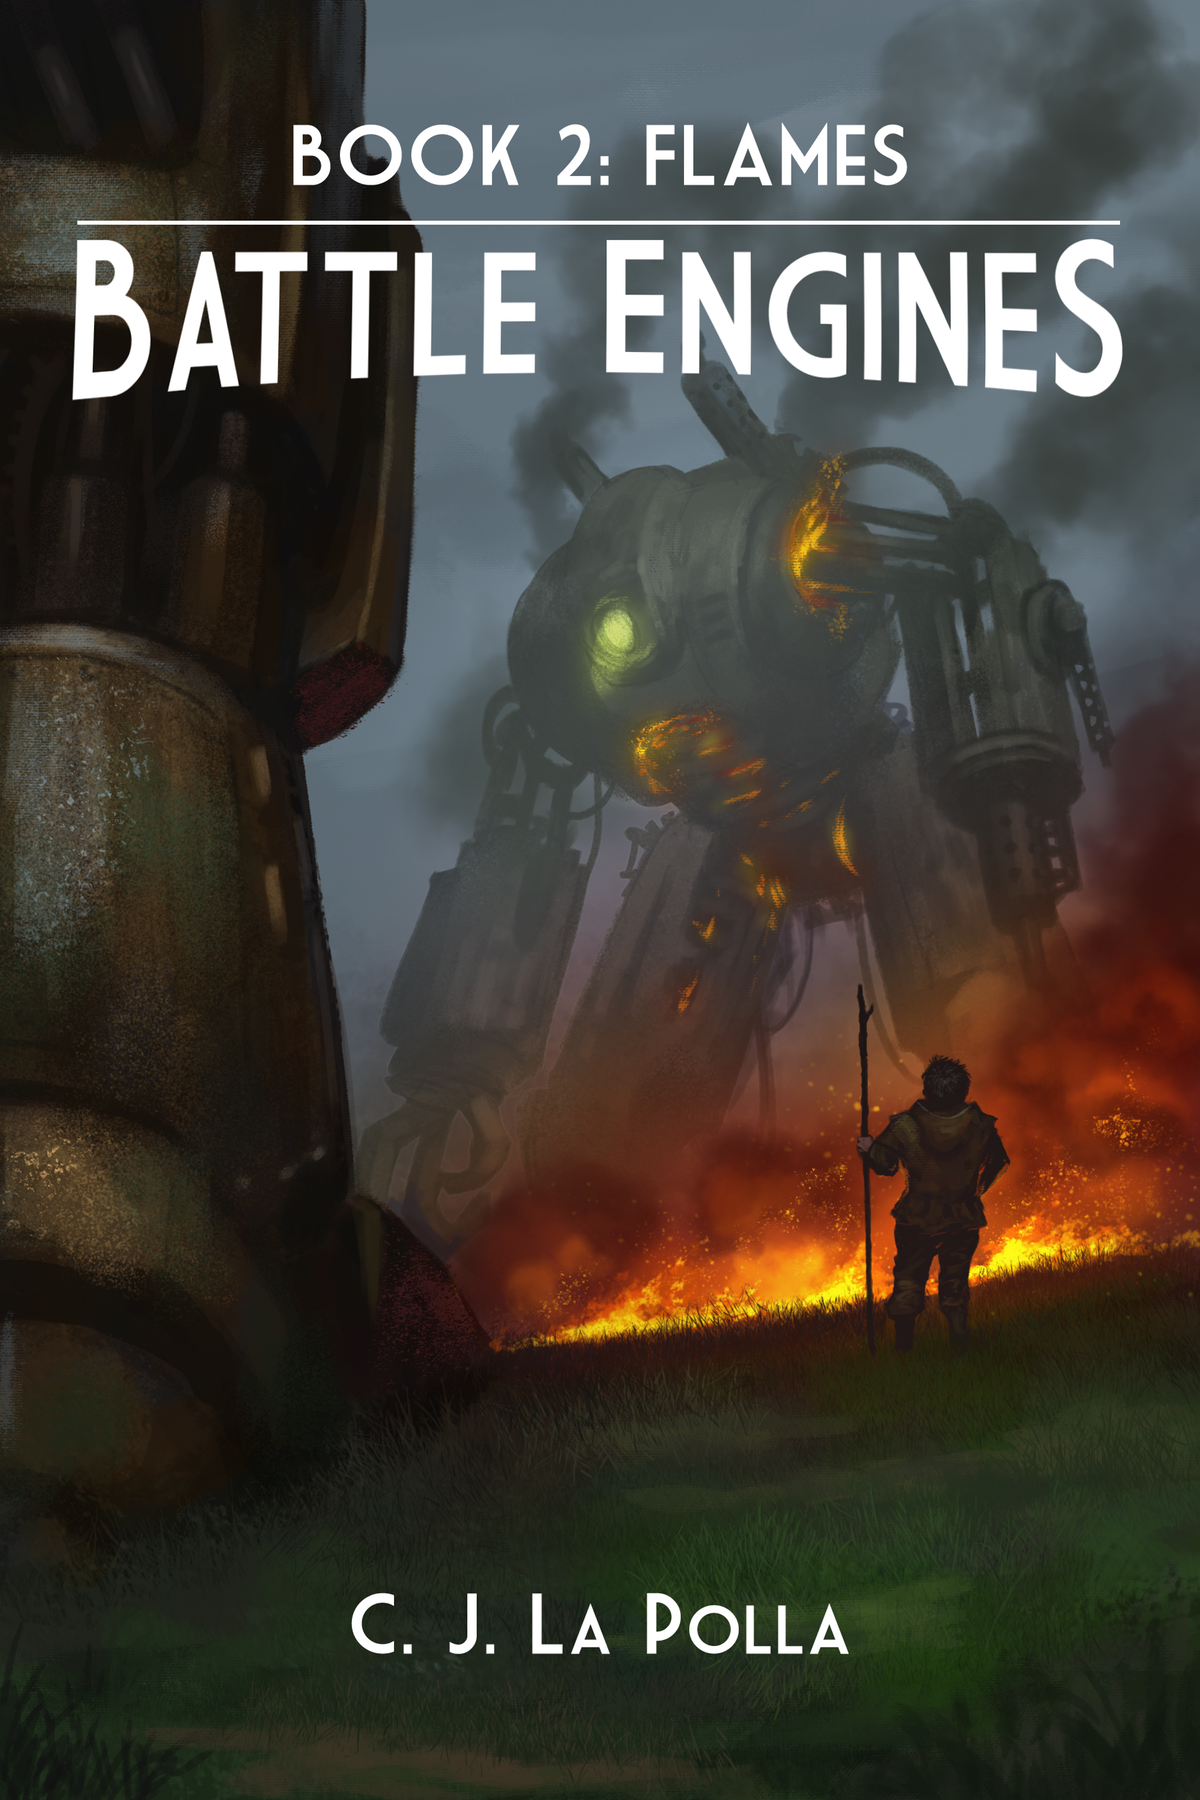 eBook and Paperback cover for Battle Engines: Book 2 Flames